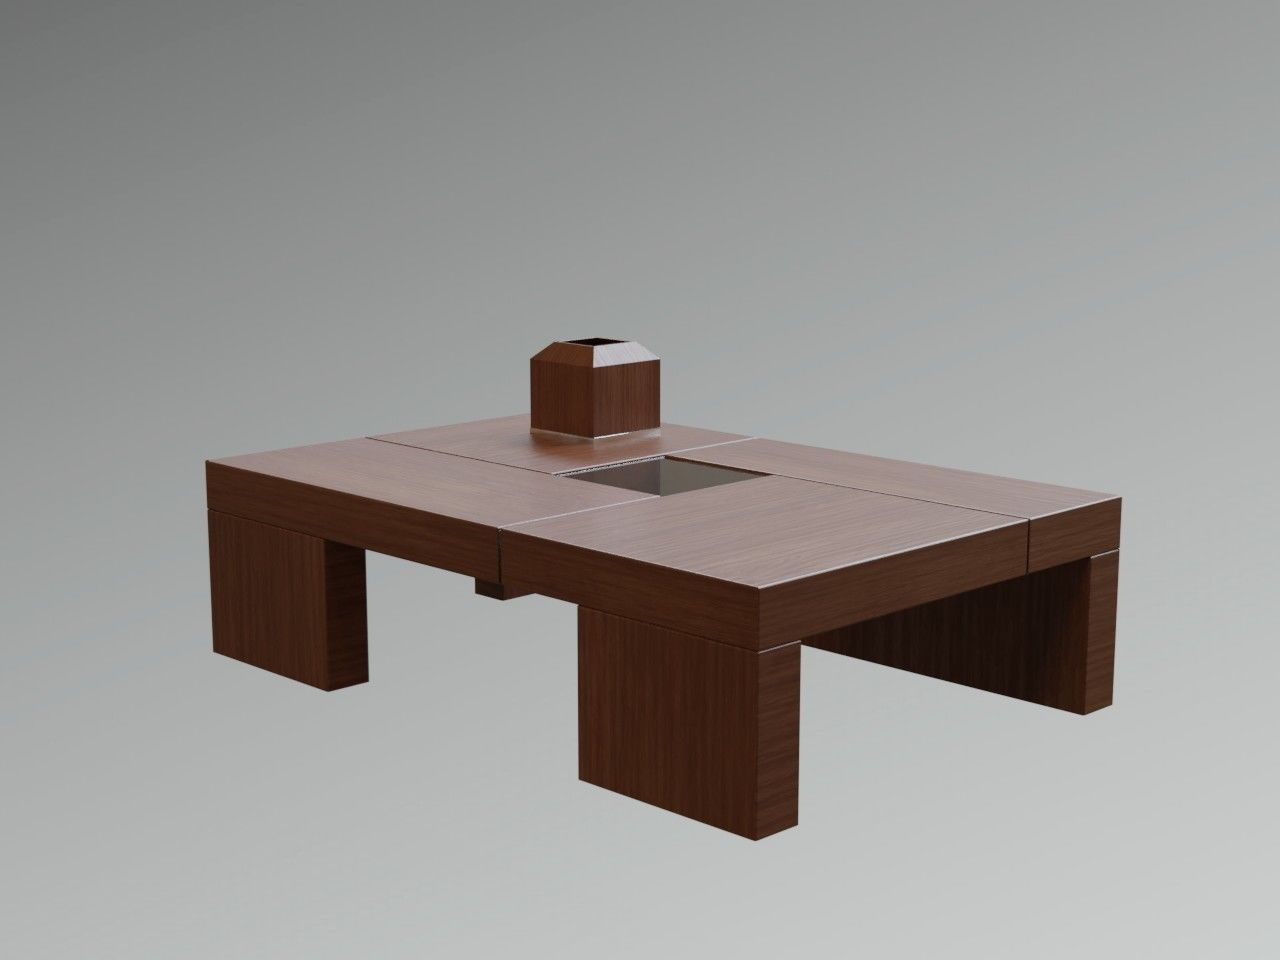 Japanese Coffee Table.Zen Japanese Modern Wooden Coffee Table Lowpoly 3d Model